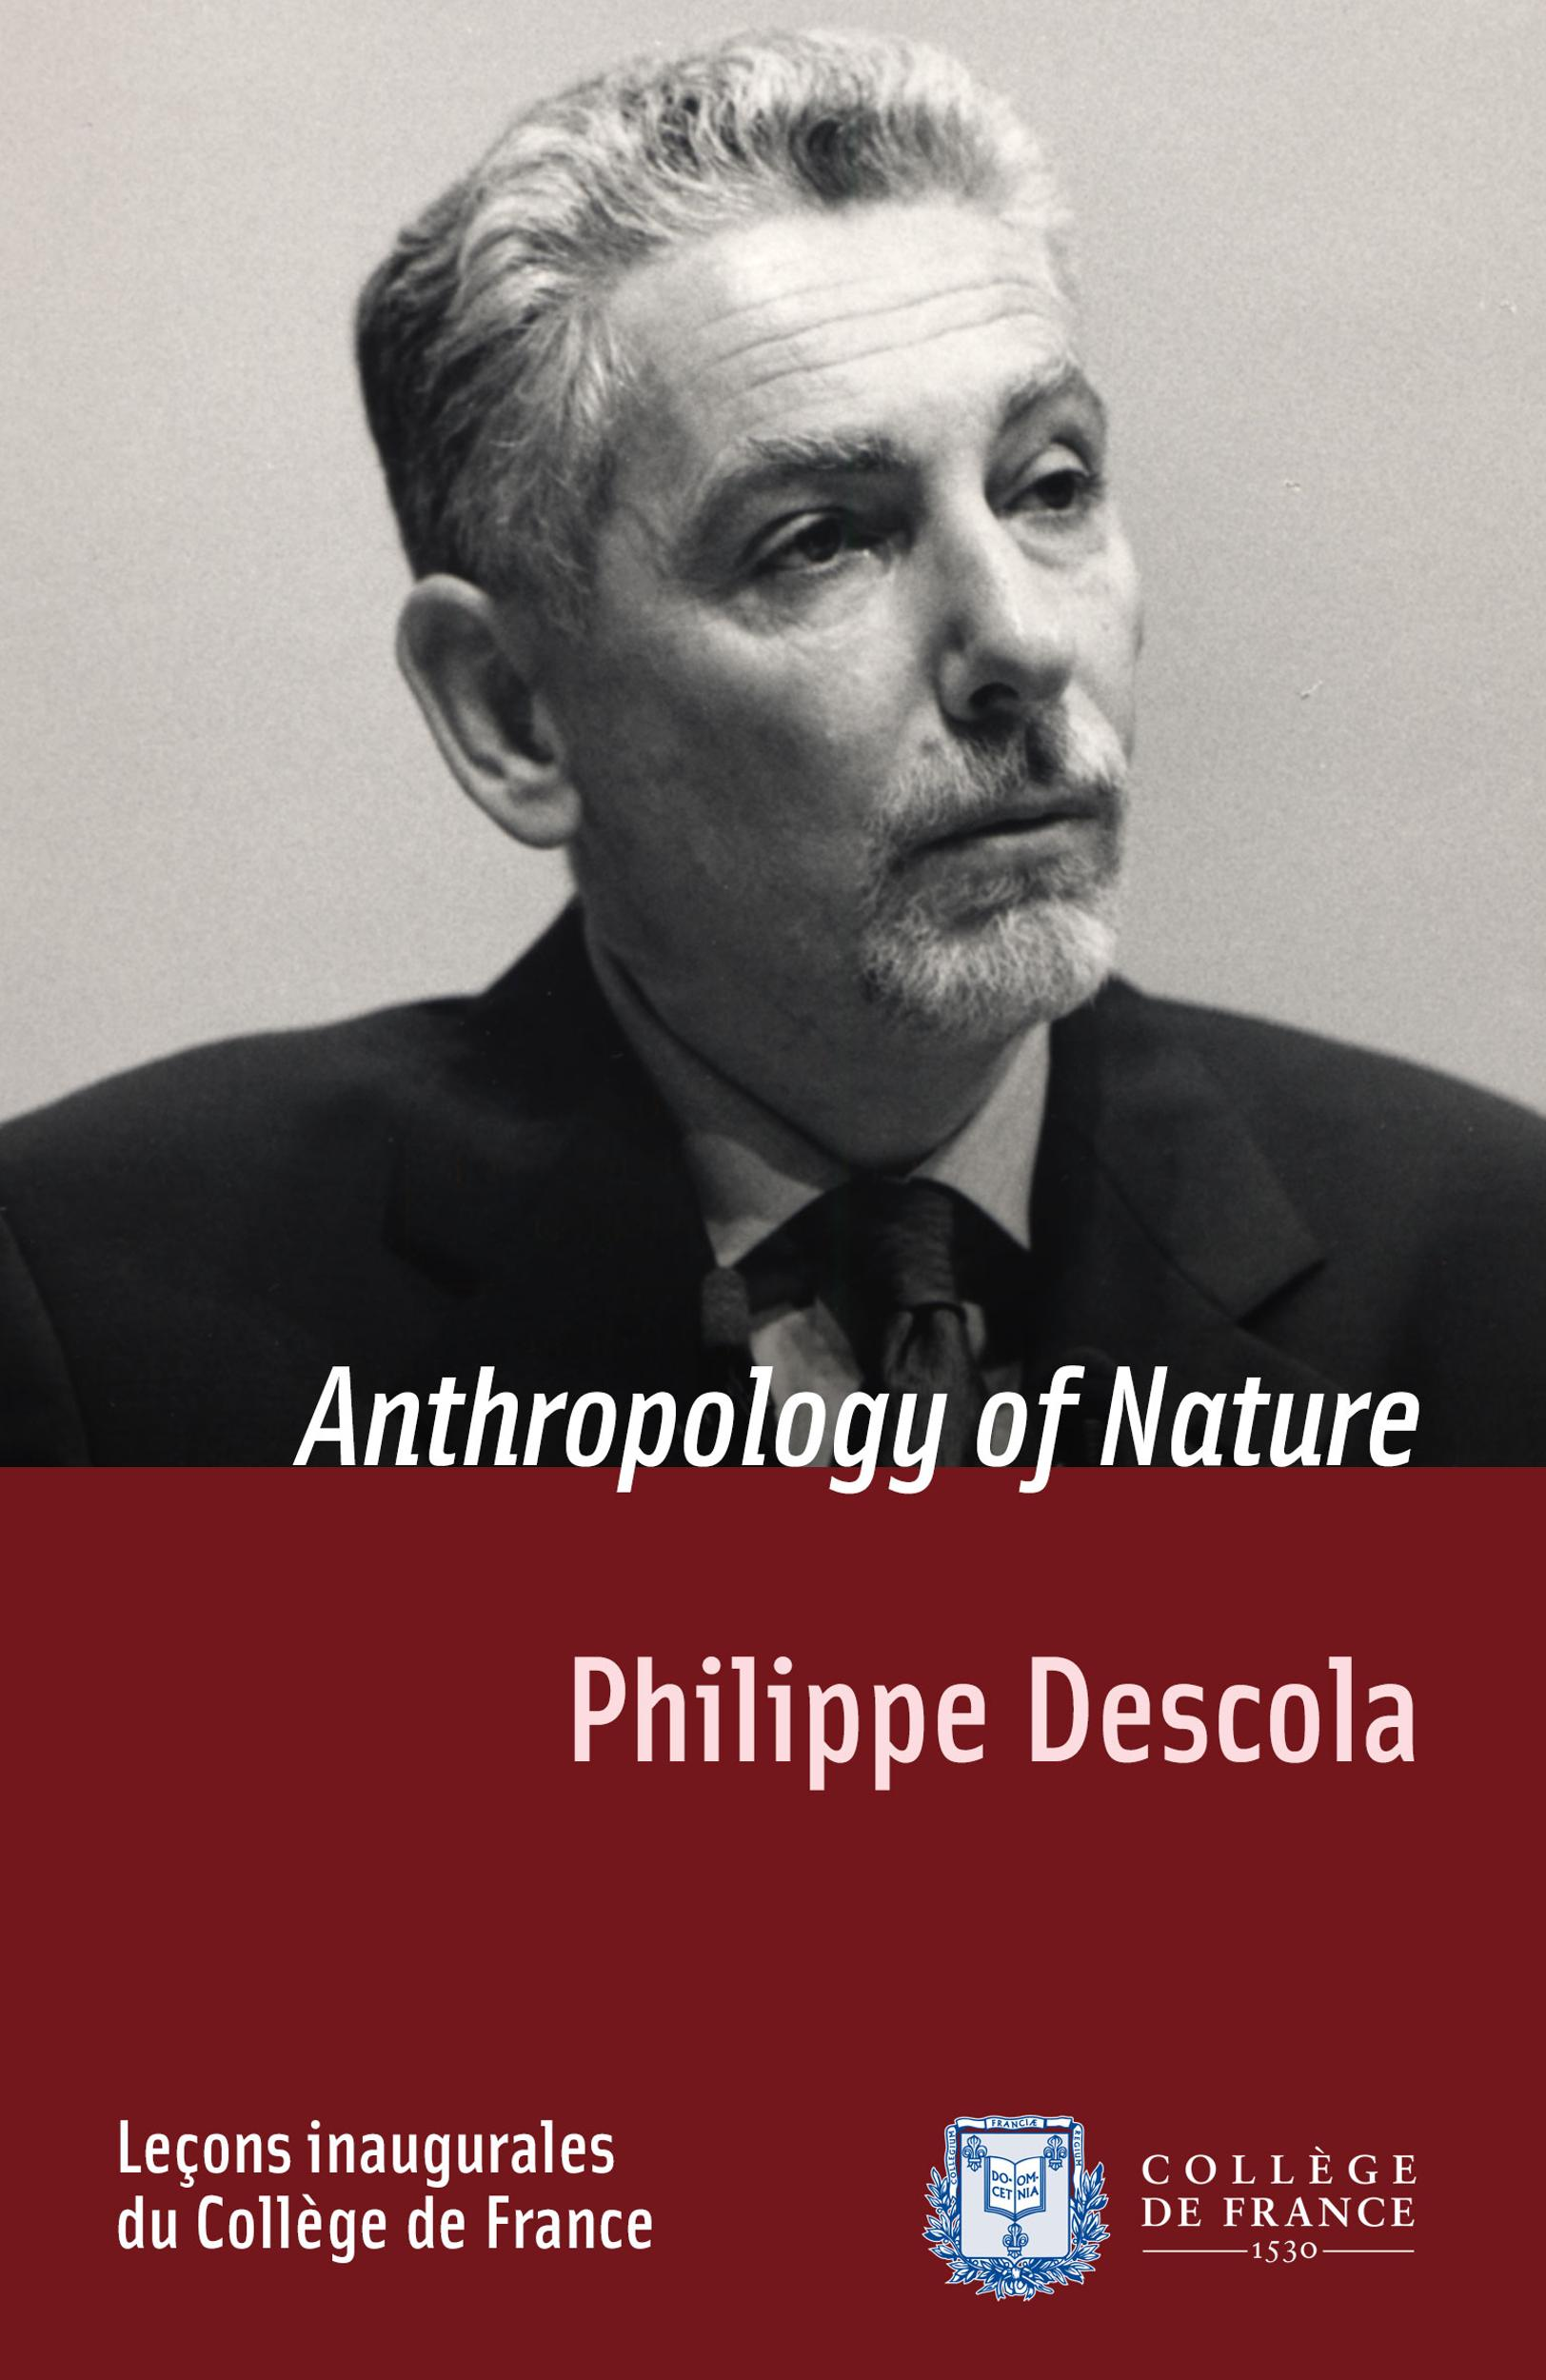 Anthropology of Nature, INAUGURAL LECTURE DELIVERED ON THURSDAY 2 MARCH 2001